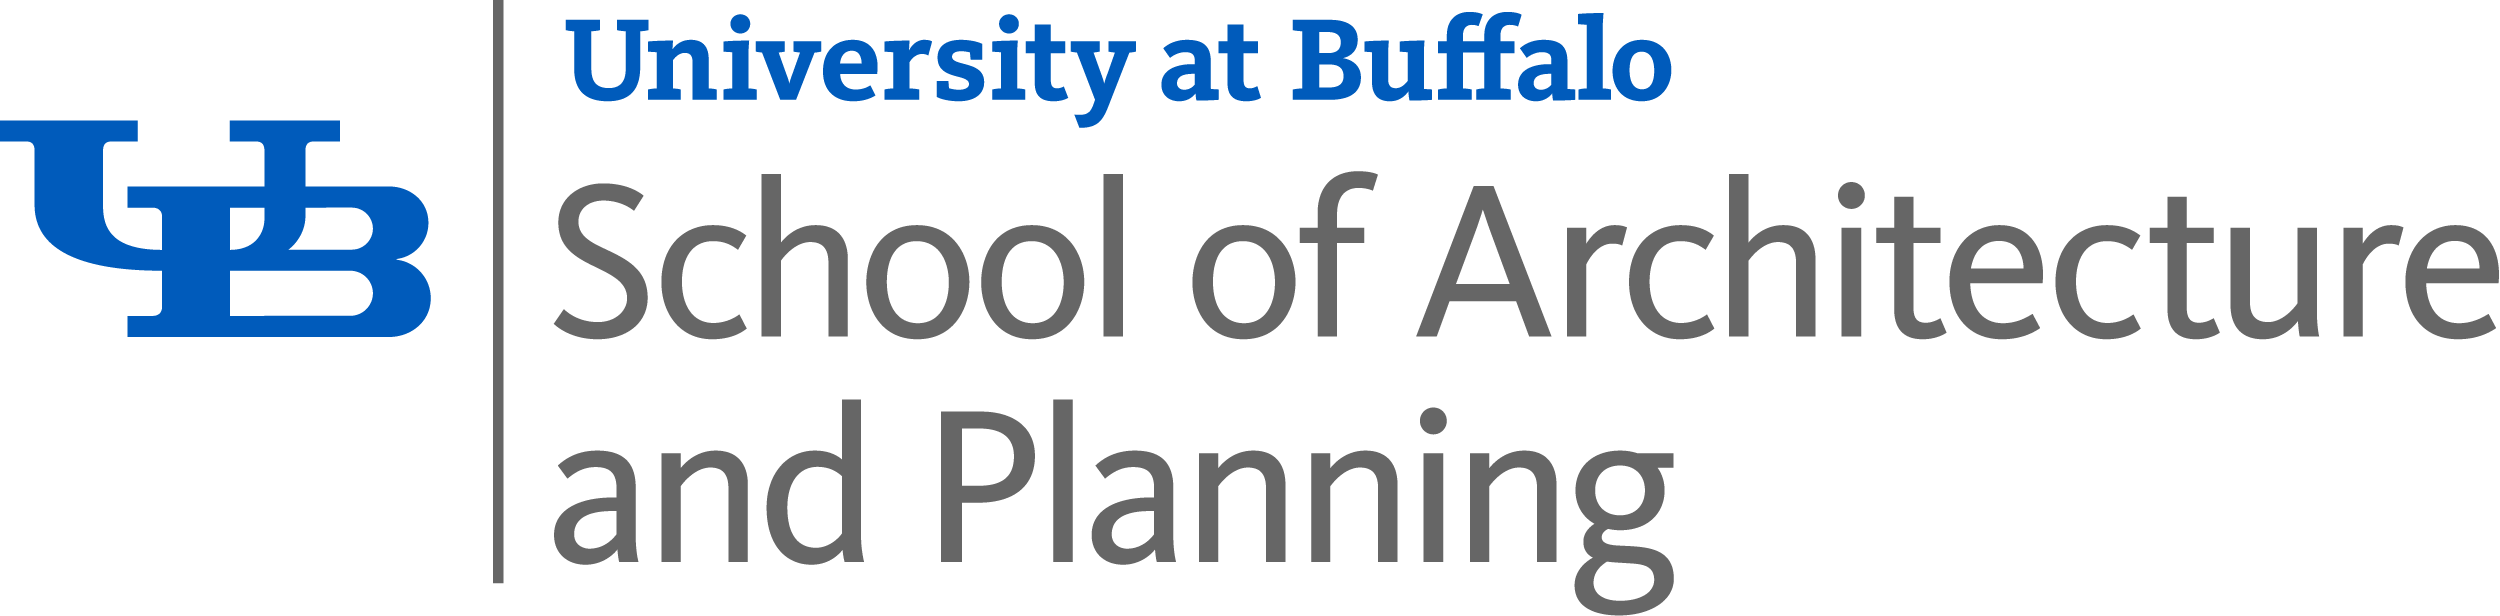 University at Buffalo, State University of New York, School of Architecture and Planning